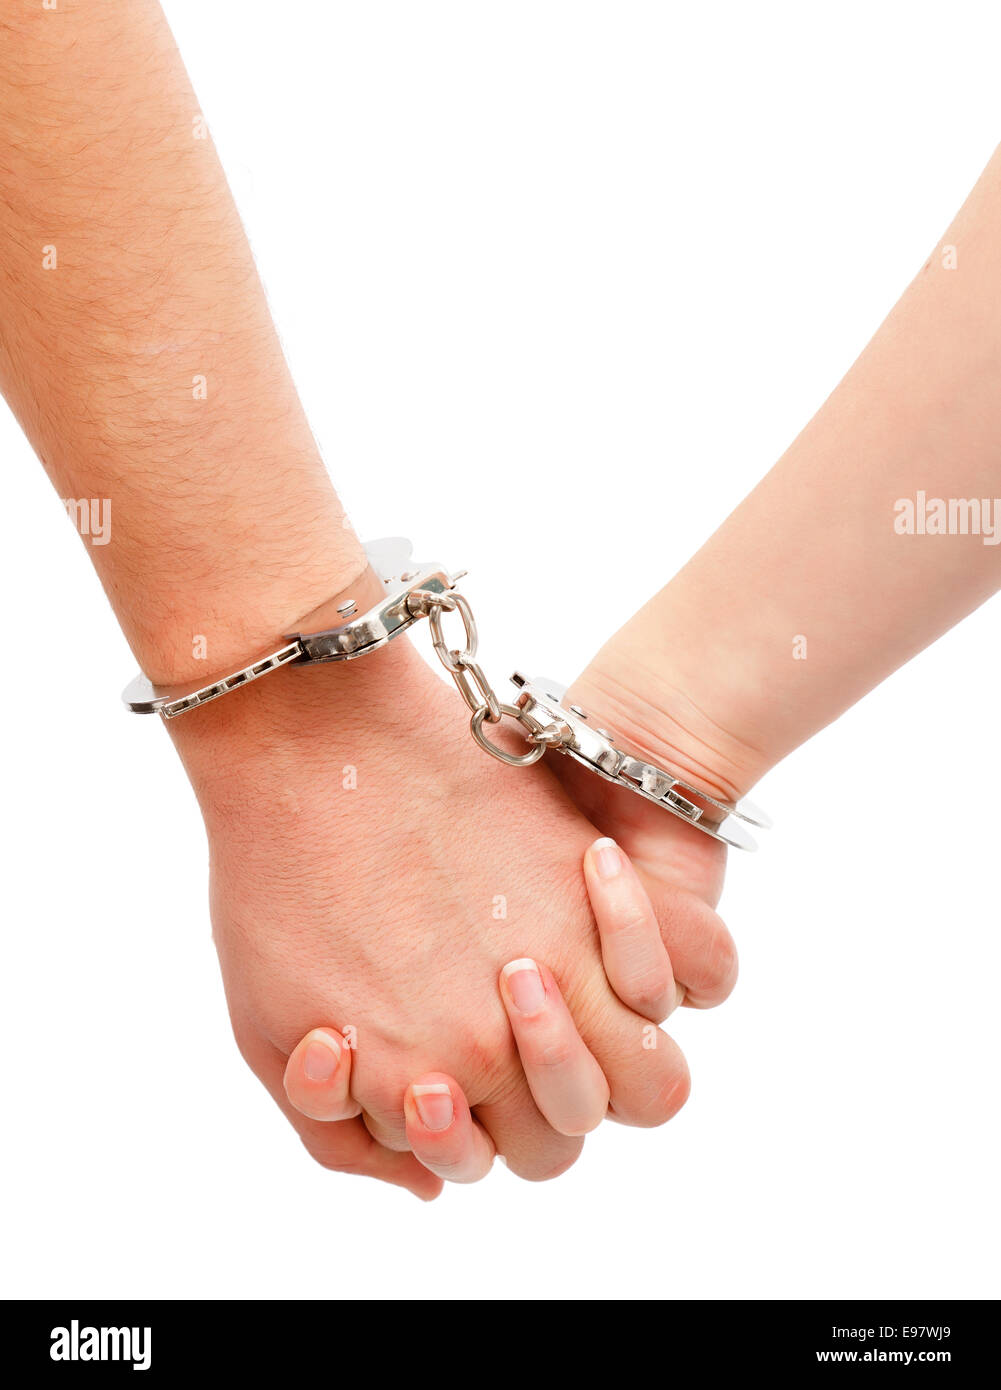 Couple's strong relation metaphor, hands linked with handcuffs - Stock Image